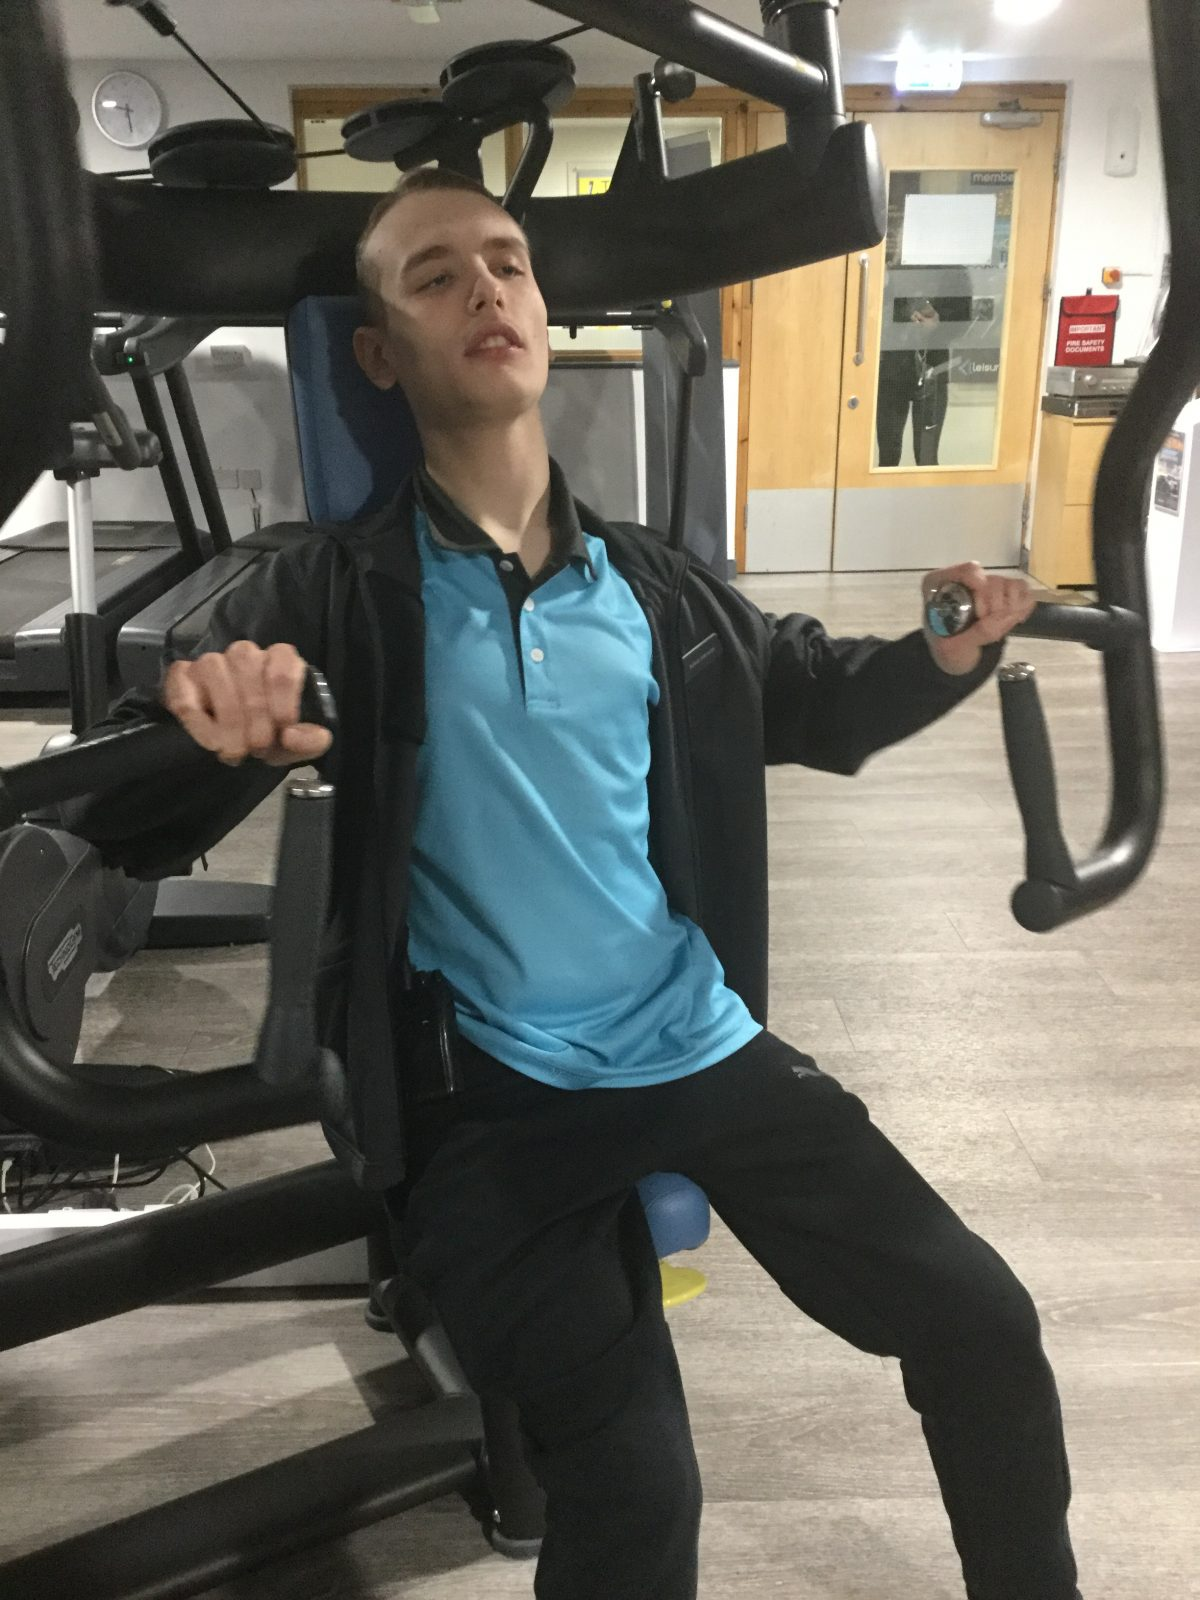 My journey into the fitness industry